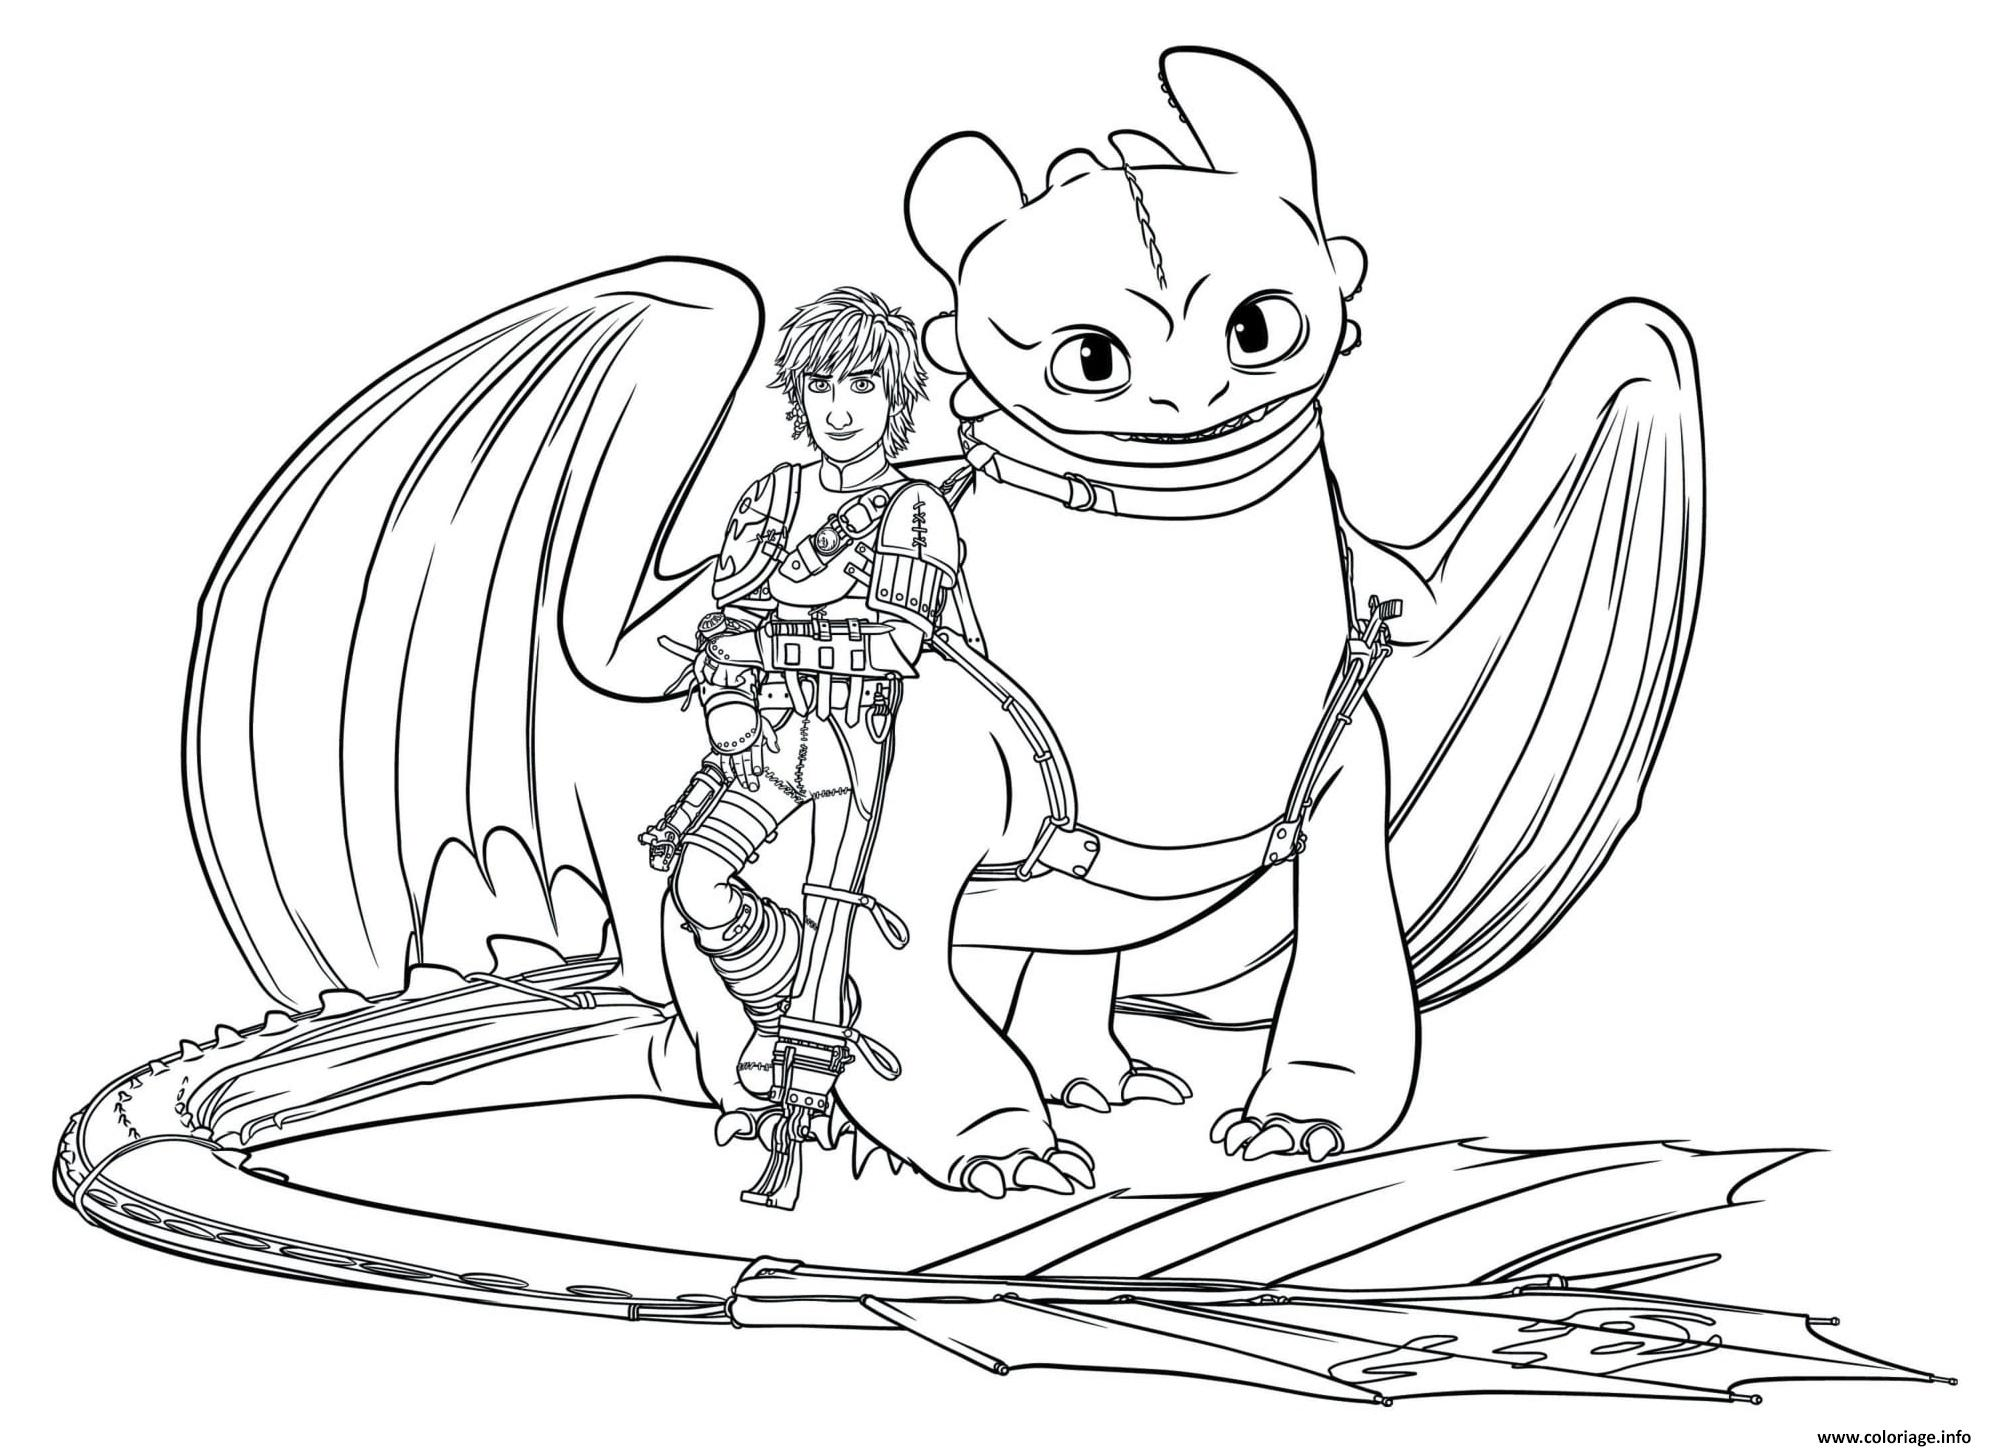 Coloriage Hiccup Toothless Dragon 5 dessin